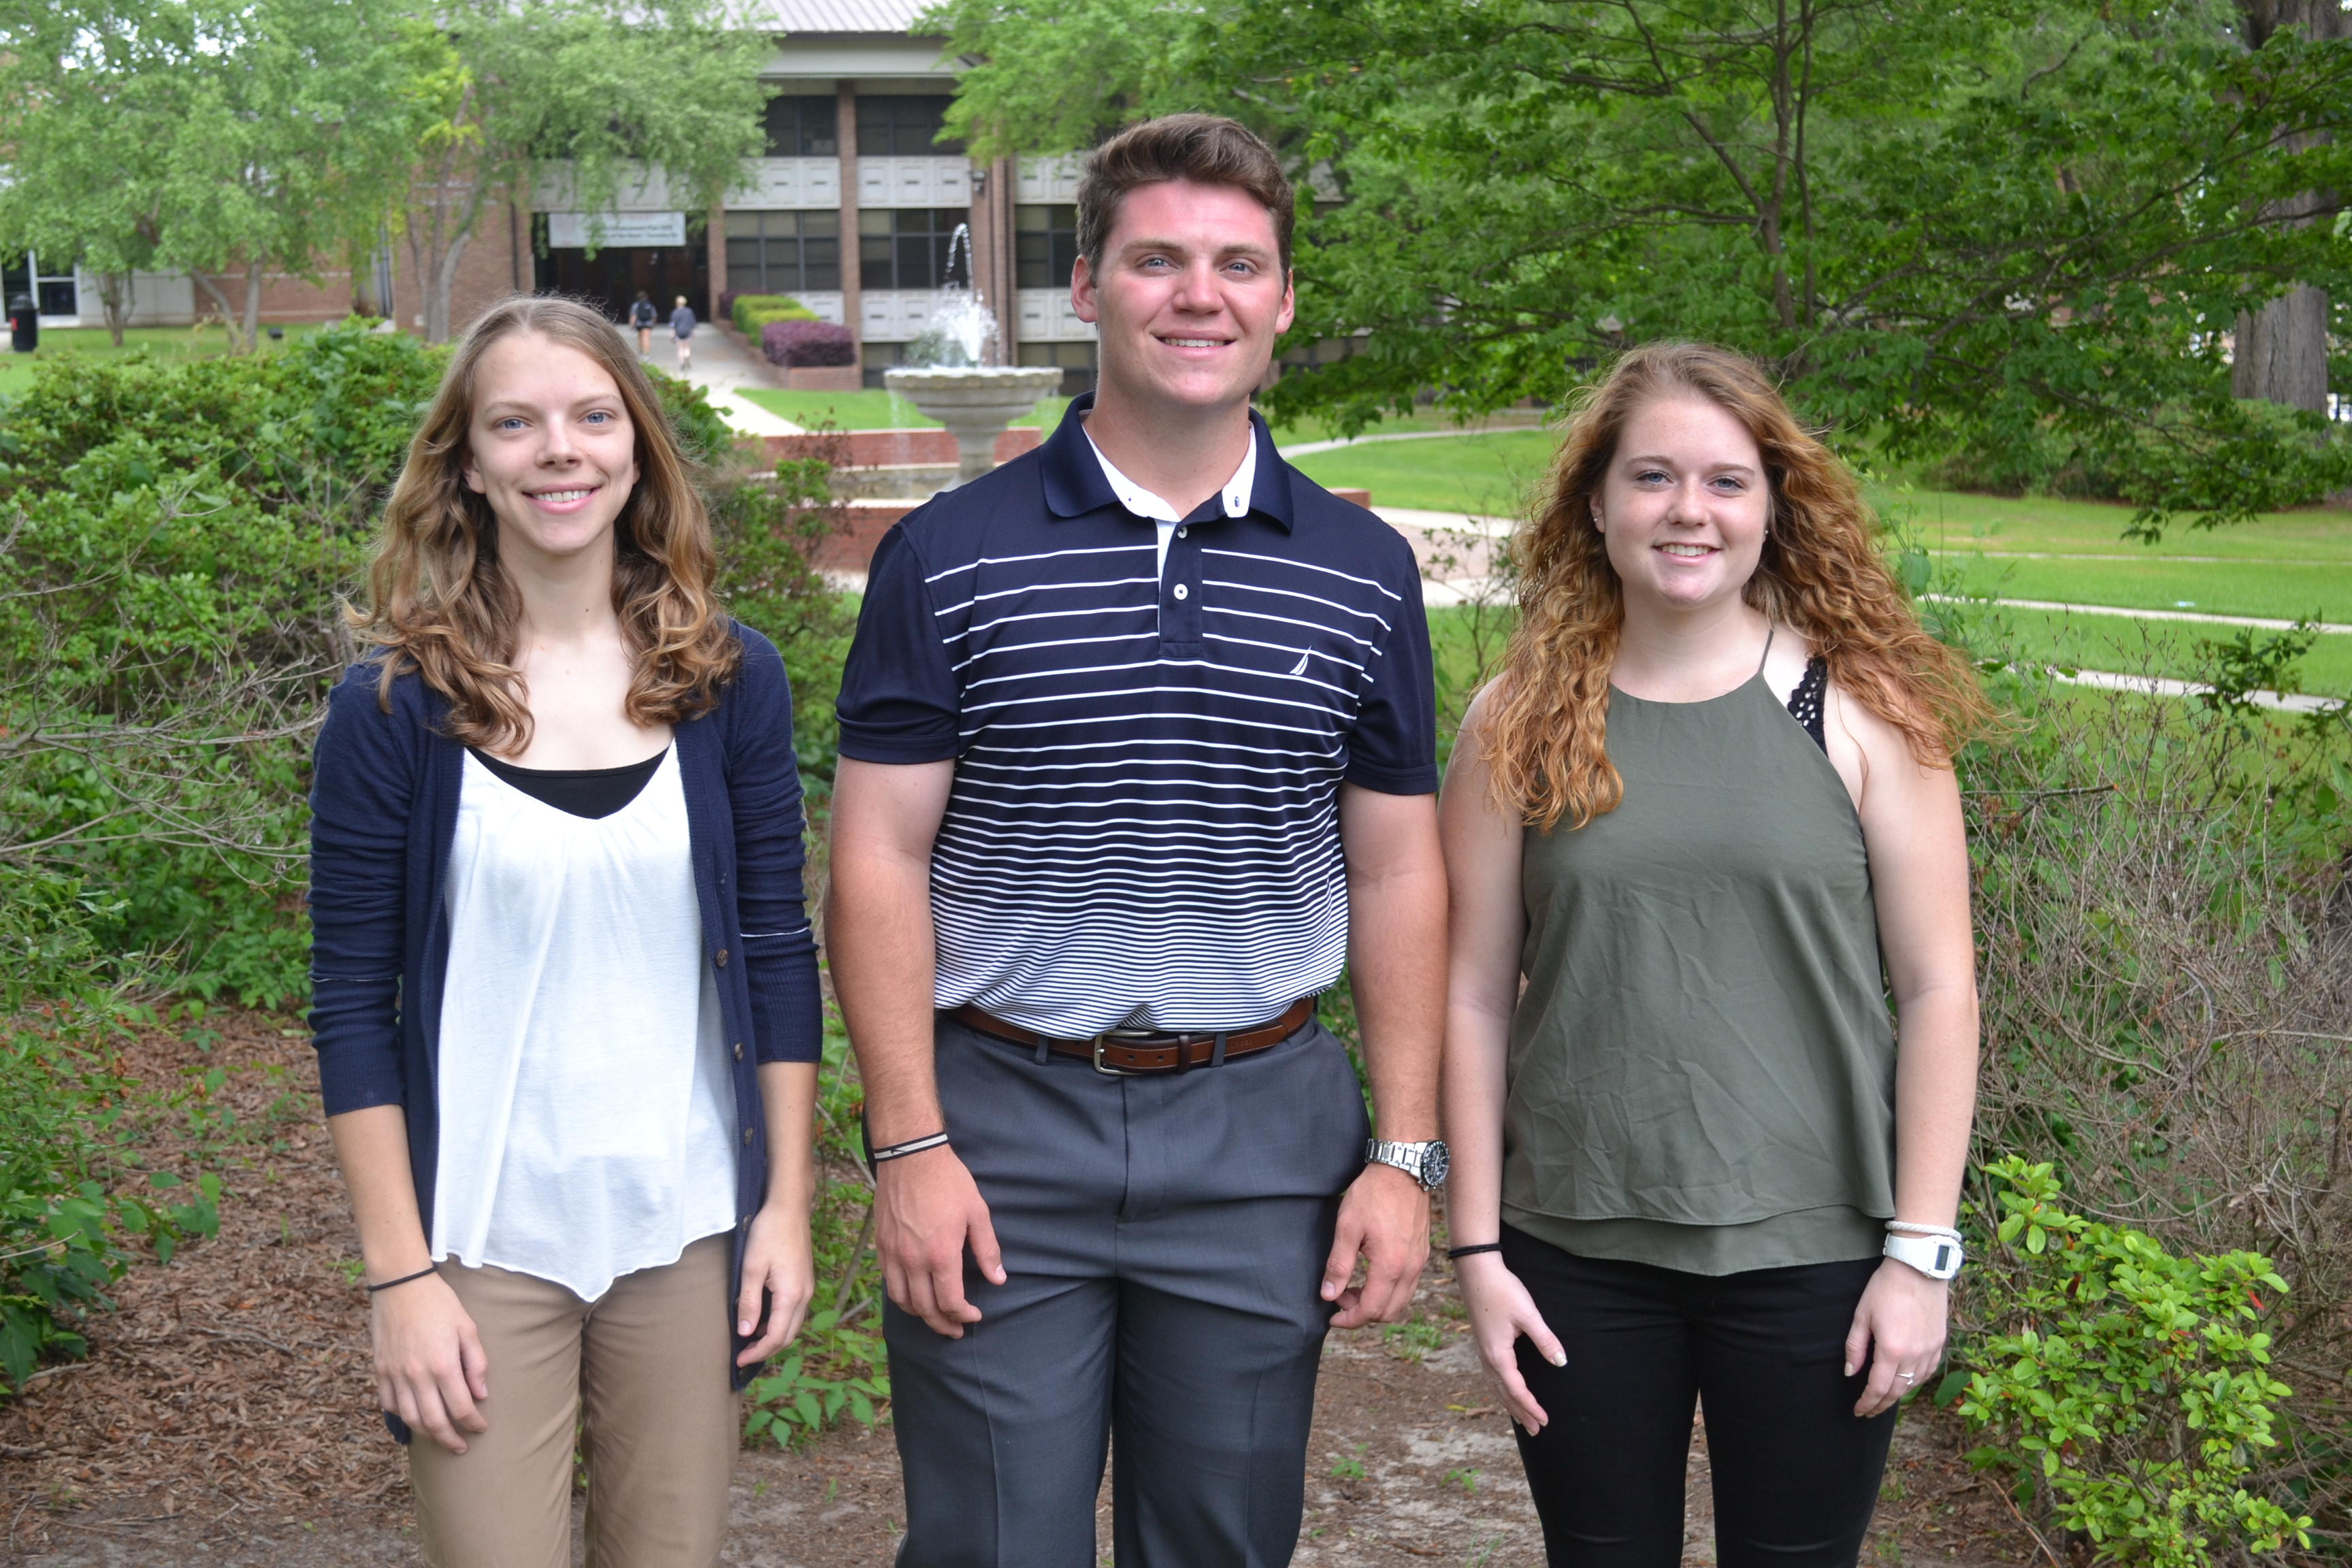 "<p>The Muller Center at Newberry College proudly announces its Muller Student Research Fellows for the 2017-18 academic year. Benjamin Herring, Sarah Johnson and Mariah Lee will each spend a semester conducting research and using their findings to develop civic projects.  </p>  <p> </p>  <p>""The aim of the fellowship is to encourage students to connect academic learning to pressing civic and ethical issues,"" said Dr. Krista E. Hughes, Muller Center director. ""This is a concrete expression of Newberry College's mission, which links intellectual and personal development to engaged citizenship.""</p>  <p> </p>  <p>Herring, a rising senior from Hopkins, S.C., will use a summer internship in Quito, Ecuador as the foundation for his project. Combining on-the-ground experience with research, he seeks to develop a strategic management system specifically for international non-governmental organizations. Locally he will work to educate about the global aspects of civic engagement.</p>  <p> </p>  <p>Johnson's project addresses early literacy and its impact on educational achievement</p>  <p>across the lifespan. A rising junior and a South Carolina Teaching Fellow from Ruby, S.C., she will focus specifically on the question of how to increase access to books and reading in the home, both to strengthen early literacy in very young children and to address the loss of reading skills when students are not in school over the summer.</p>  <p> </p>  <p>Lee, a rising sophomore from Seaford, Del., will conduct laboratory research in microbiology this summer at the University of Georgia. Upon returning to Newberry, she will investigate vaccination rates among elderly populations in Newberry County and develop educational materials on the importance of community-wide vaccinations for preventing the spread of disease.</p>  <p> </p>  <p>""The disciplinary variety of these three projects is really exciting,"" Hughes said. ""They show the wide possibilities for civic engagement. We are pleased by the clear commitment of this class of Muller Fellows to draw their campus peers into their civic projects."" She added, ""Student leadership is a key motivator of student engagement. All three of these Fellows are already leaders on campus and, thanks to their work, I expect enthusiasm for civic engagement to grow in the 2017-18 year.""</p>"